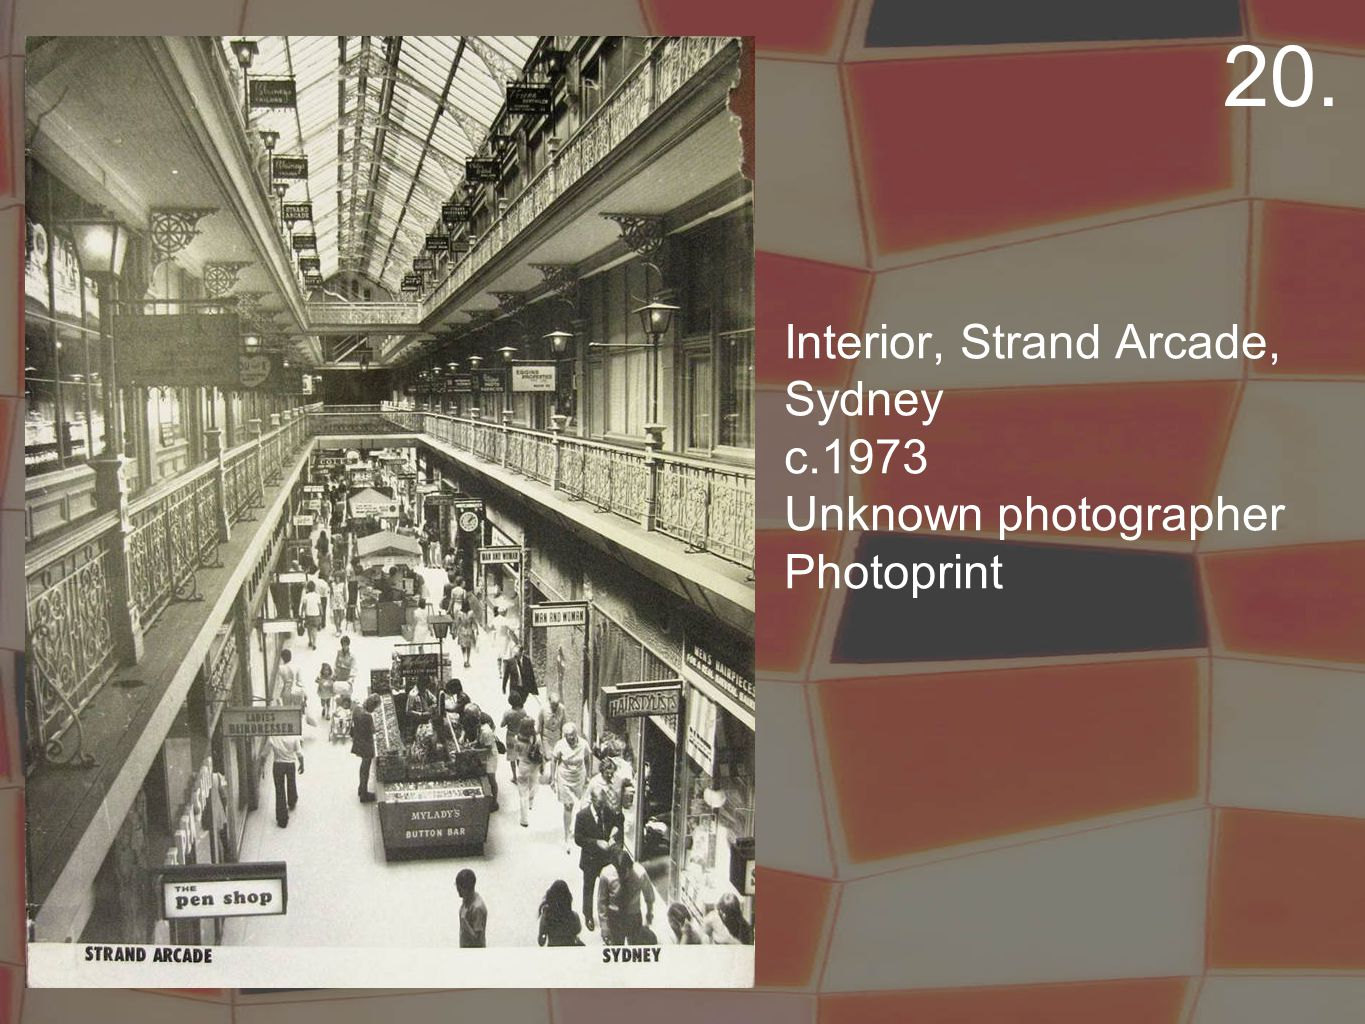 Interior, Strand Arcade, Sydney c.1973 Unknown photographer Photoprint 20.